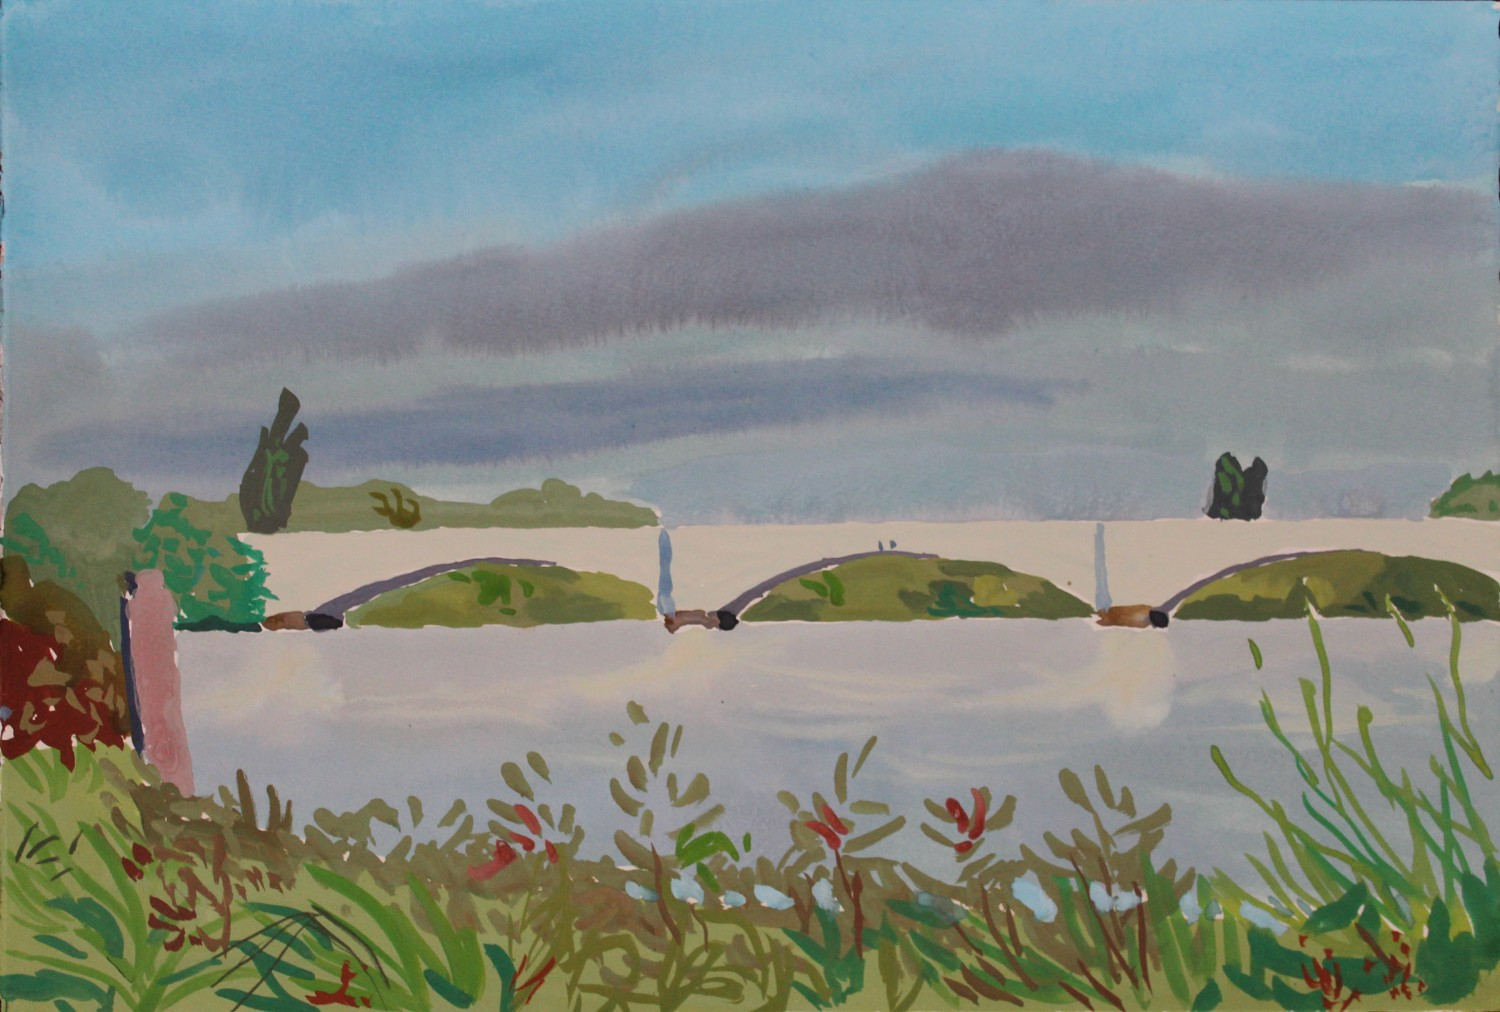 Thames landscape (Chiswick Bridge) 2020 by Mark Dober